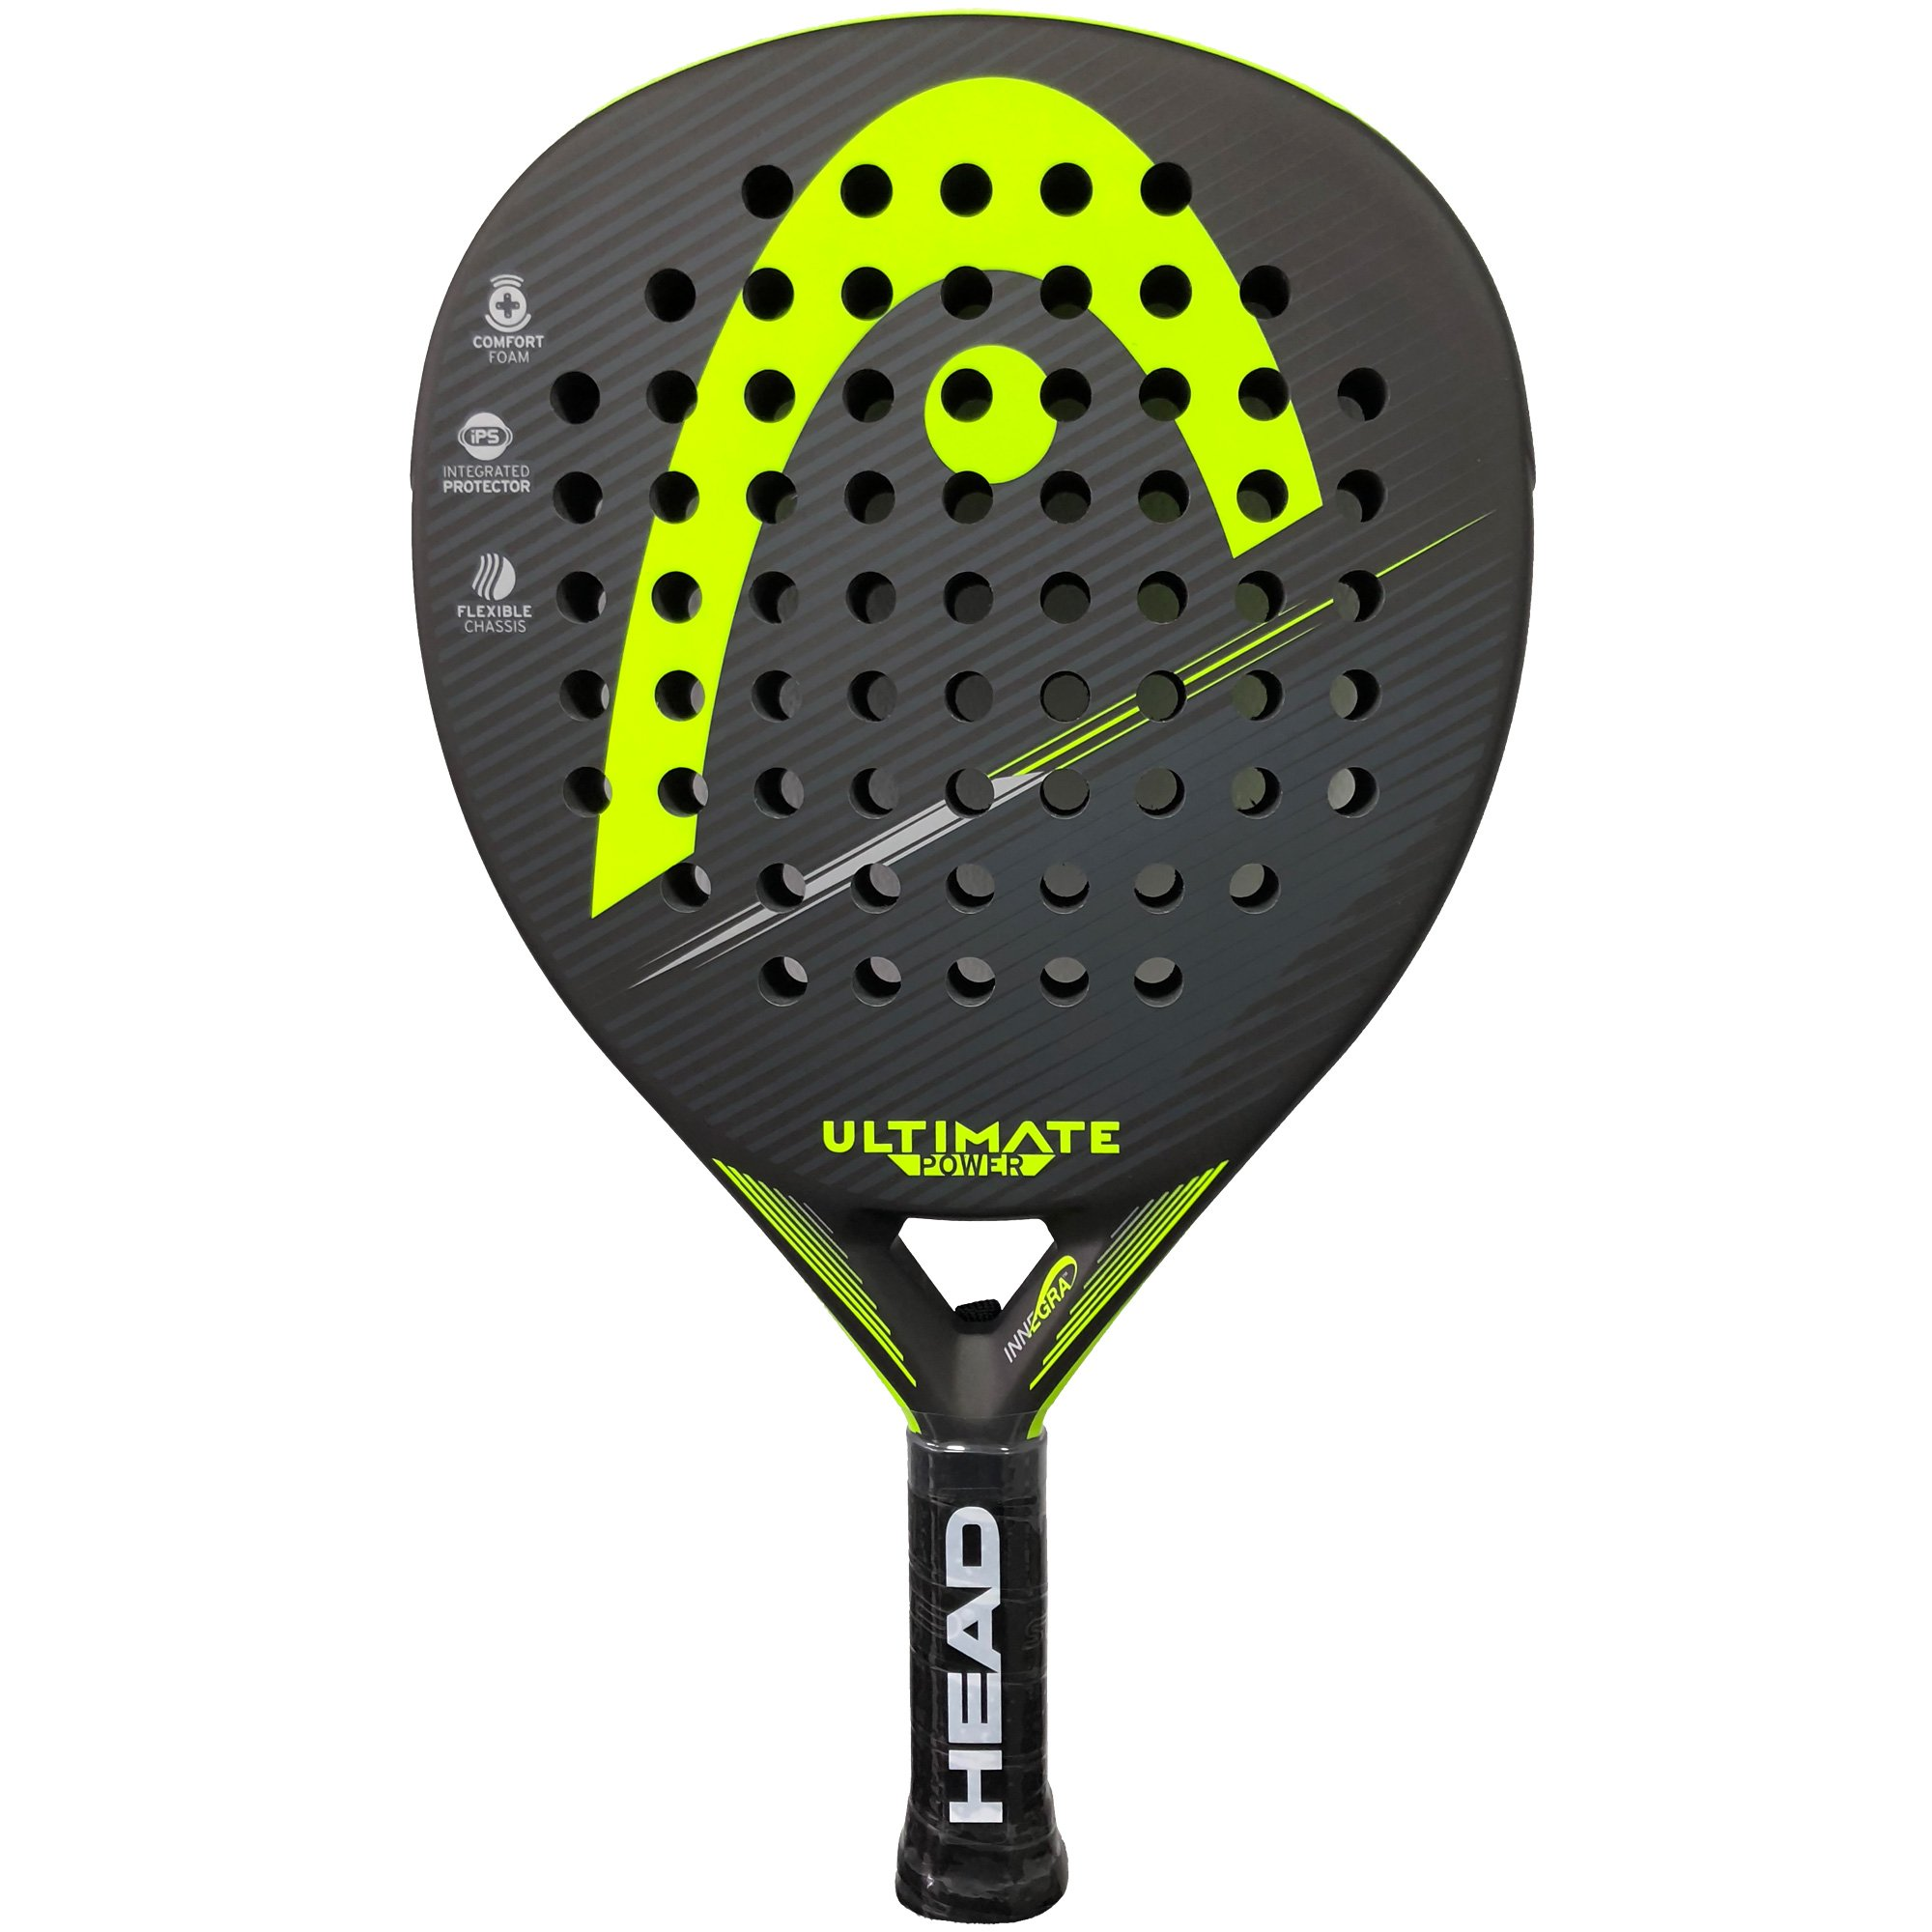 Pala de padel - Head Ultimate Power Yellow 2018 product image